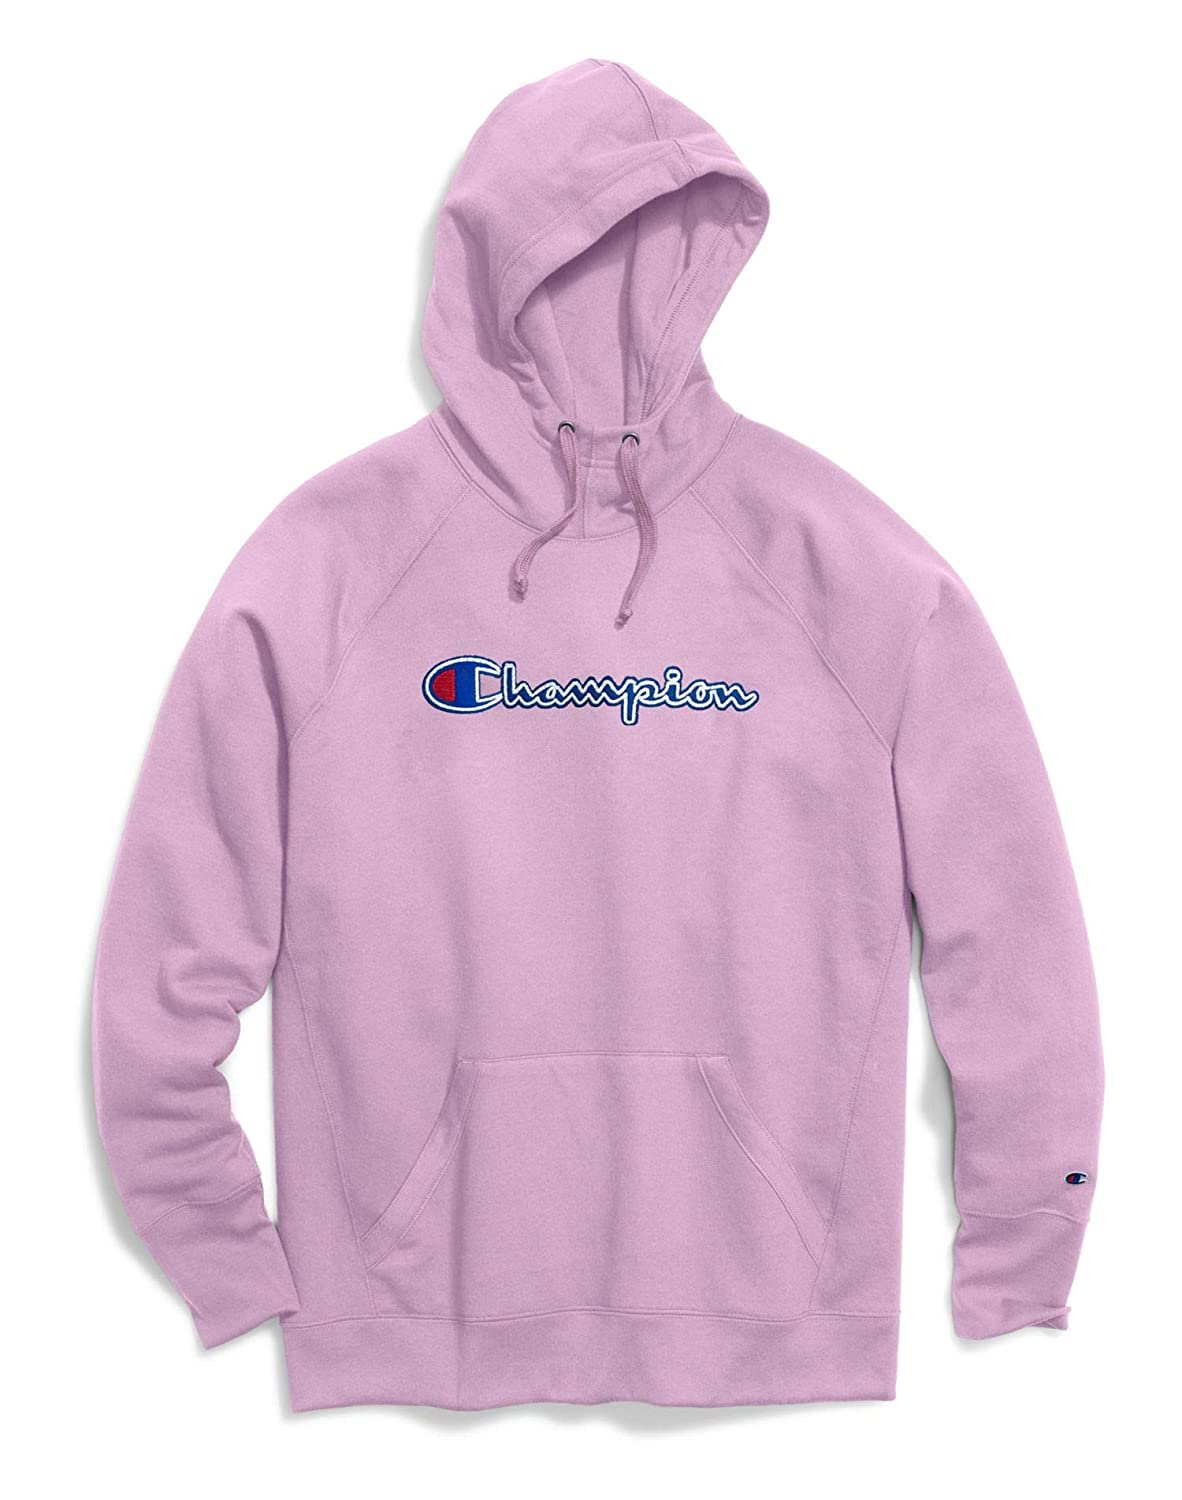 Champion Powerblend Fleece Pullover Hood w/Applique Jacket (W0934F)